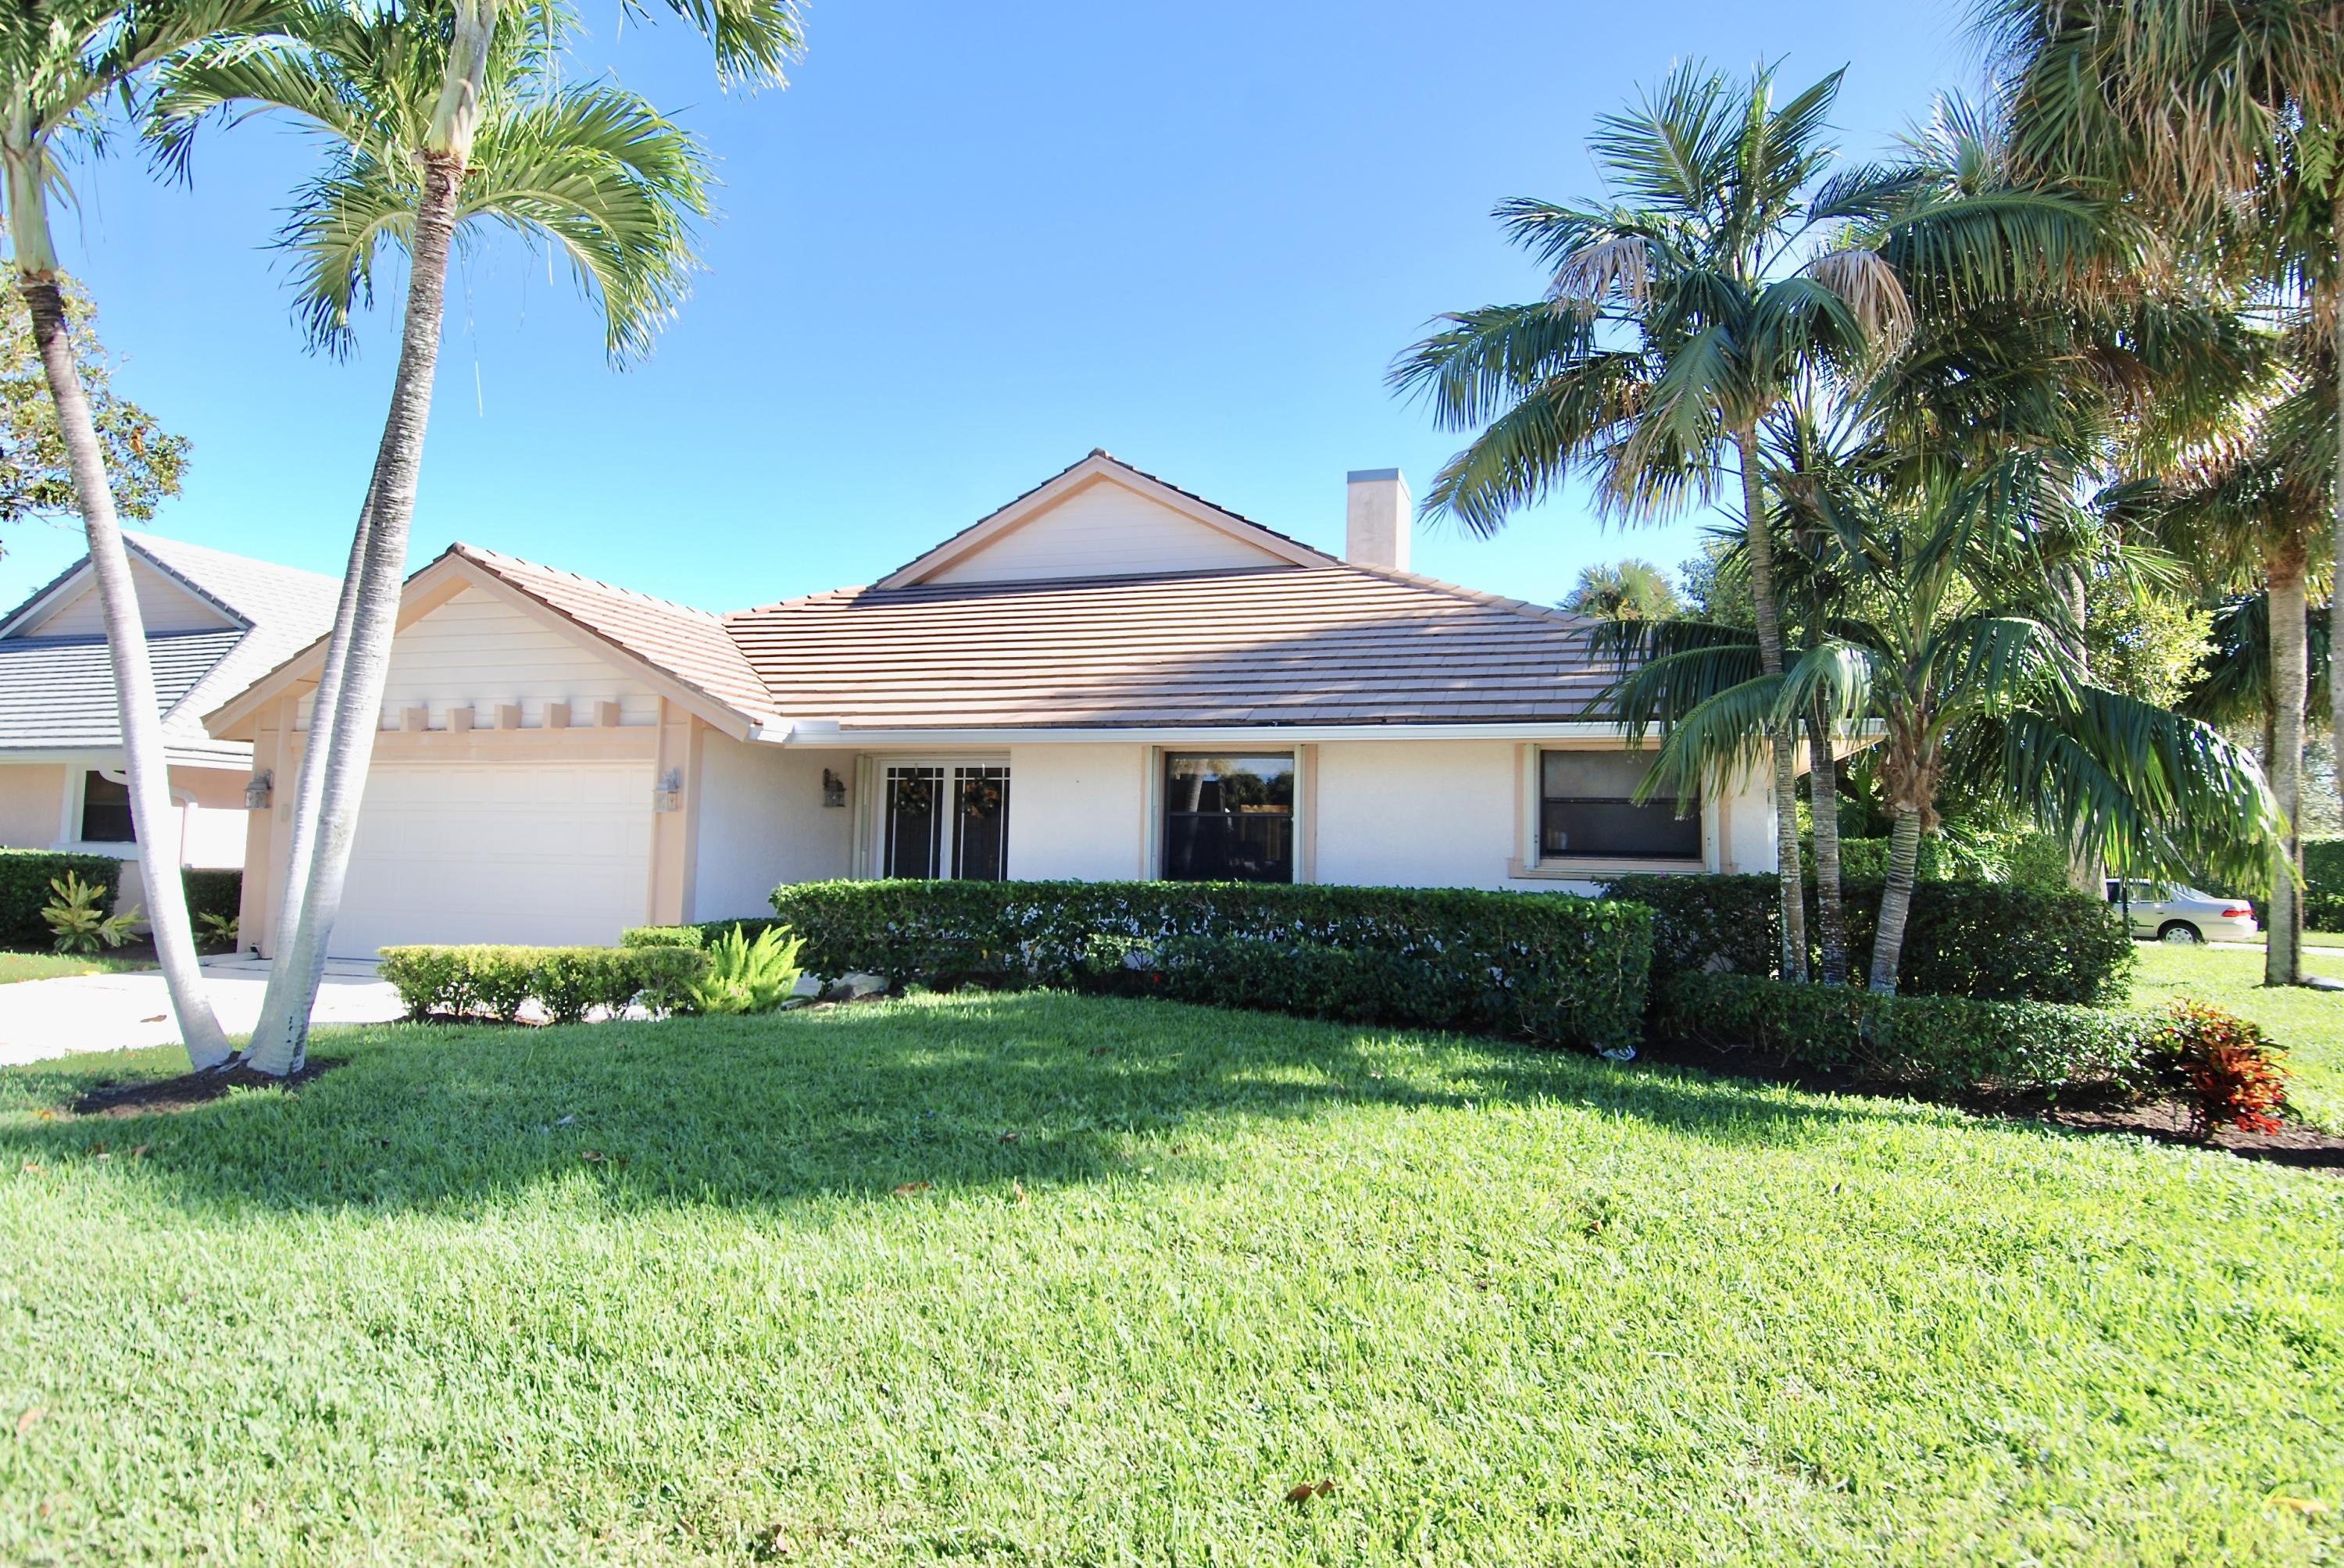 16968 Freshwind Circle, Jupiter, Florida 33477, 3 Bedrooms Bedrooms, ,2.1 BathroomsBathrooms,Single Family,For Sale,Freshwind,1,RX-10486653